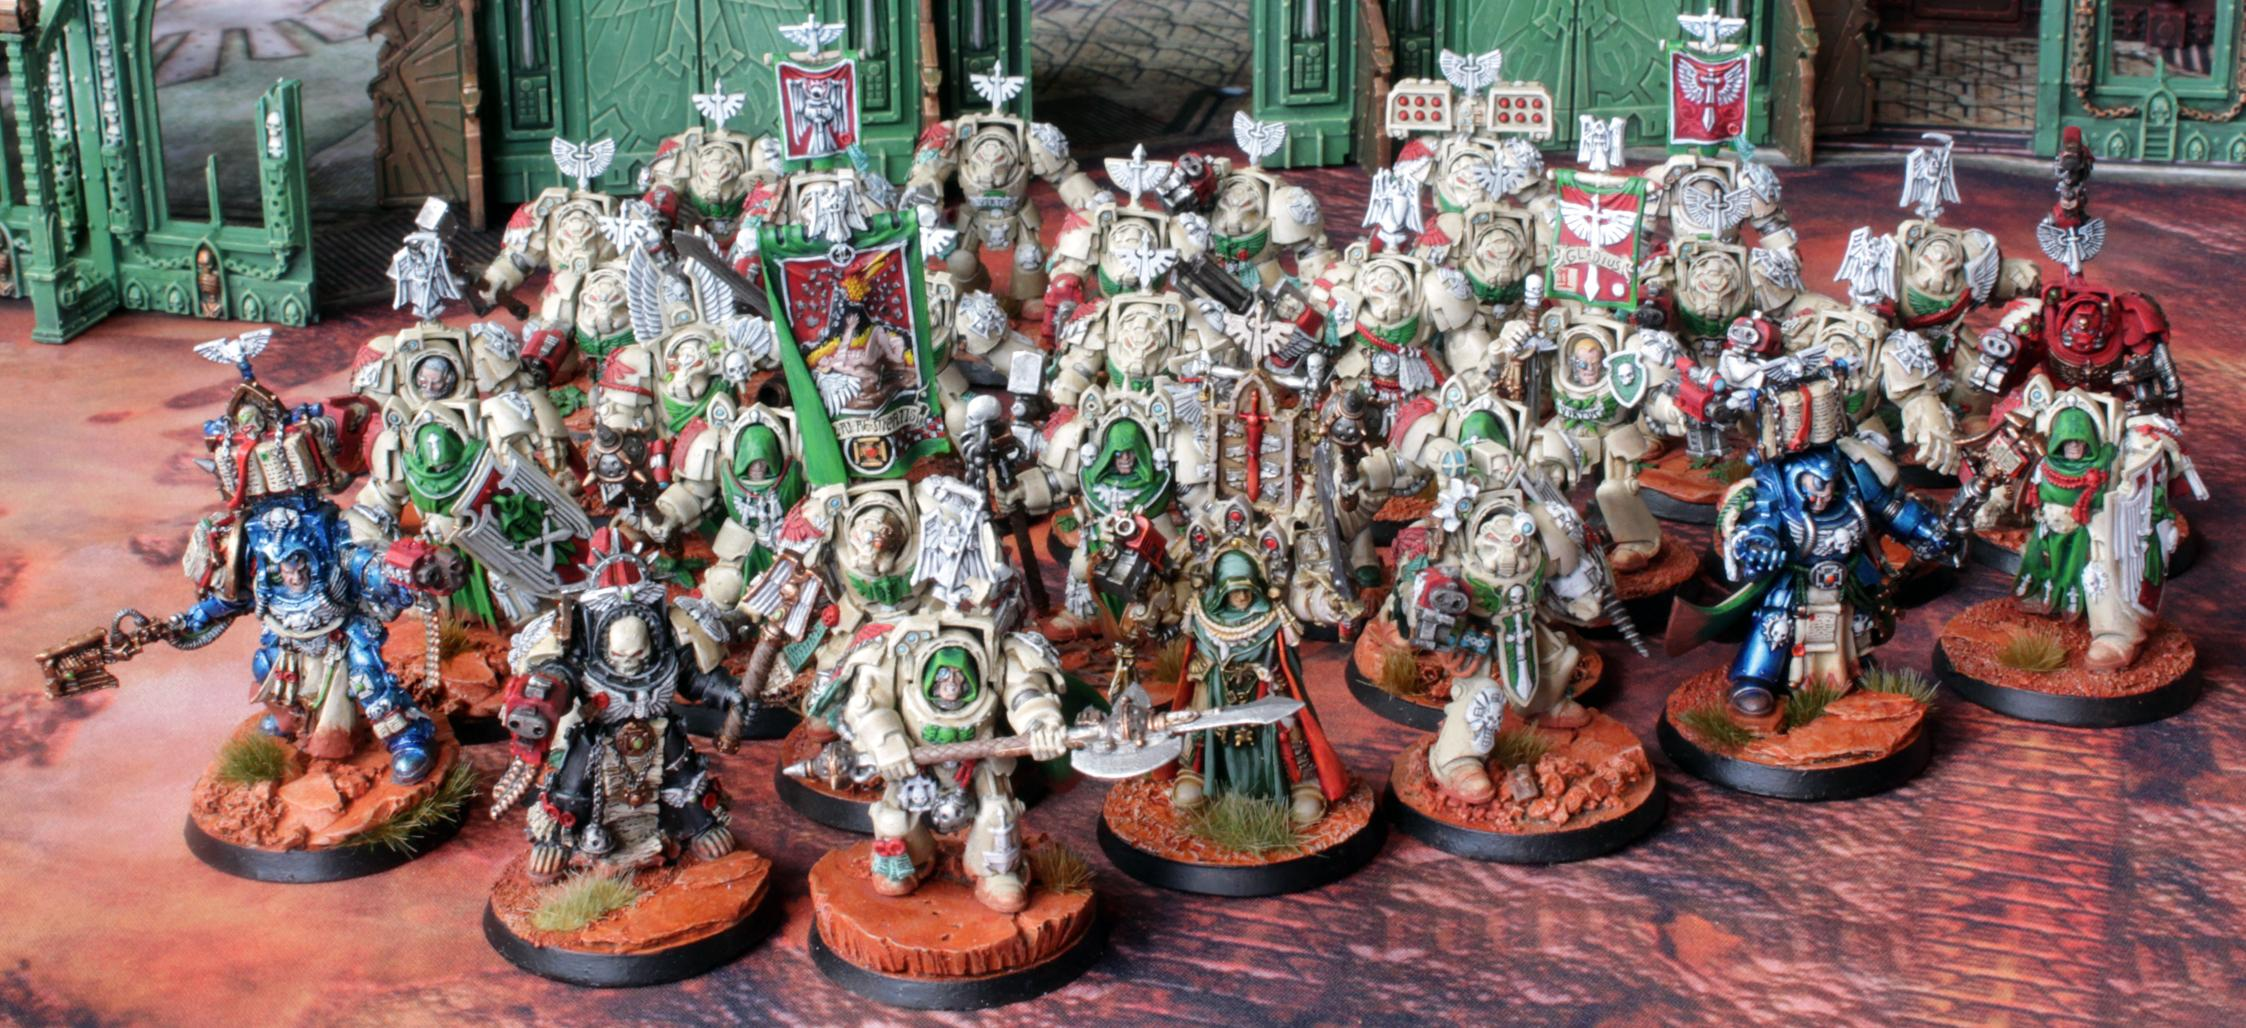 Ancient, Apothicary, Archivist, Belial, Champion, Chaplain, Dark Angels, Deathwing, First Company, Imperium, Inner Circle, Space Marines, Techmarine, Terminator Armor